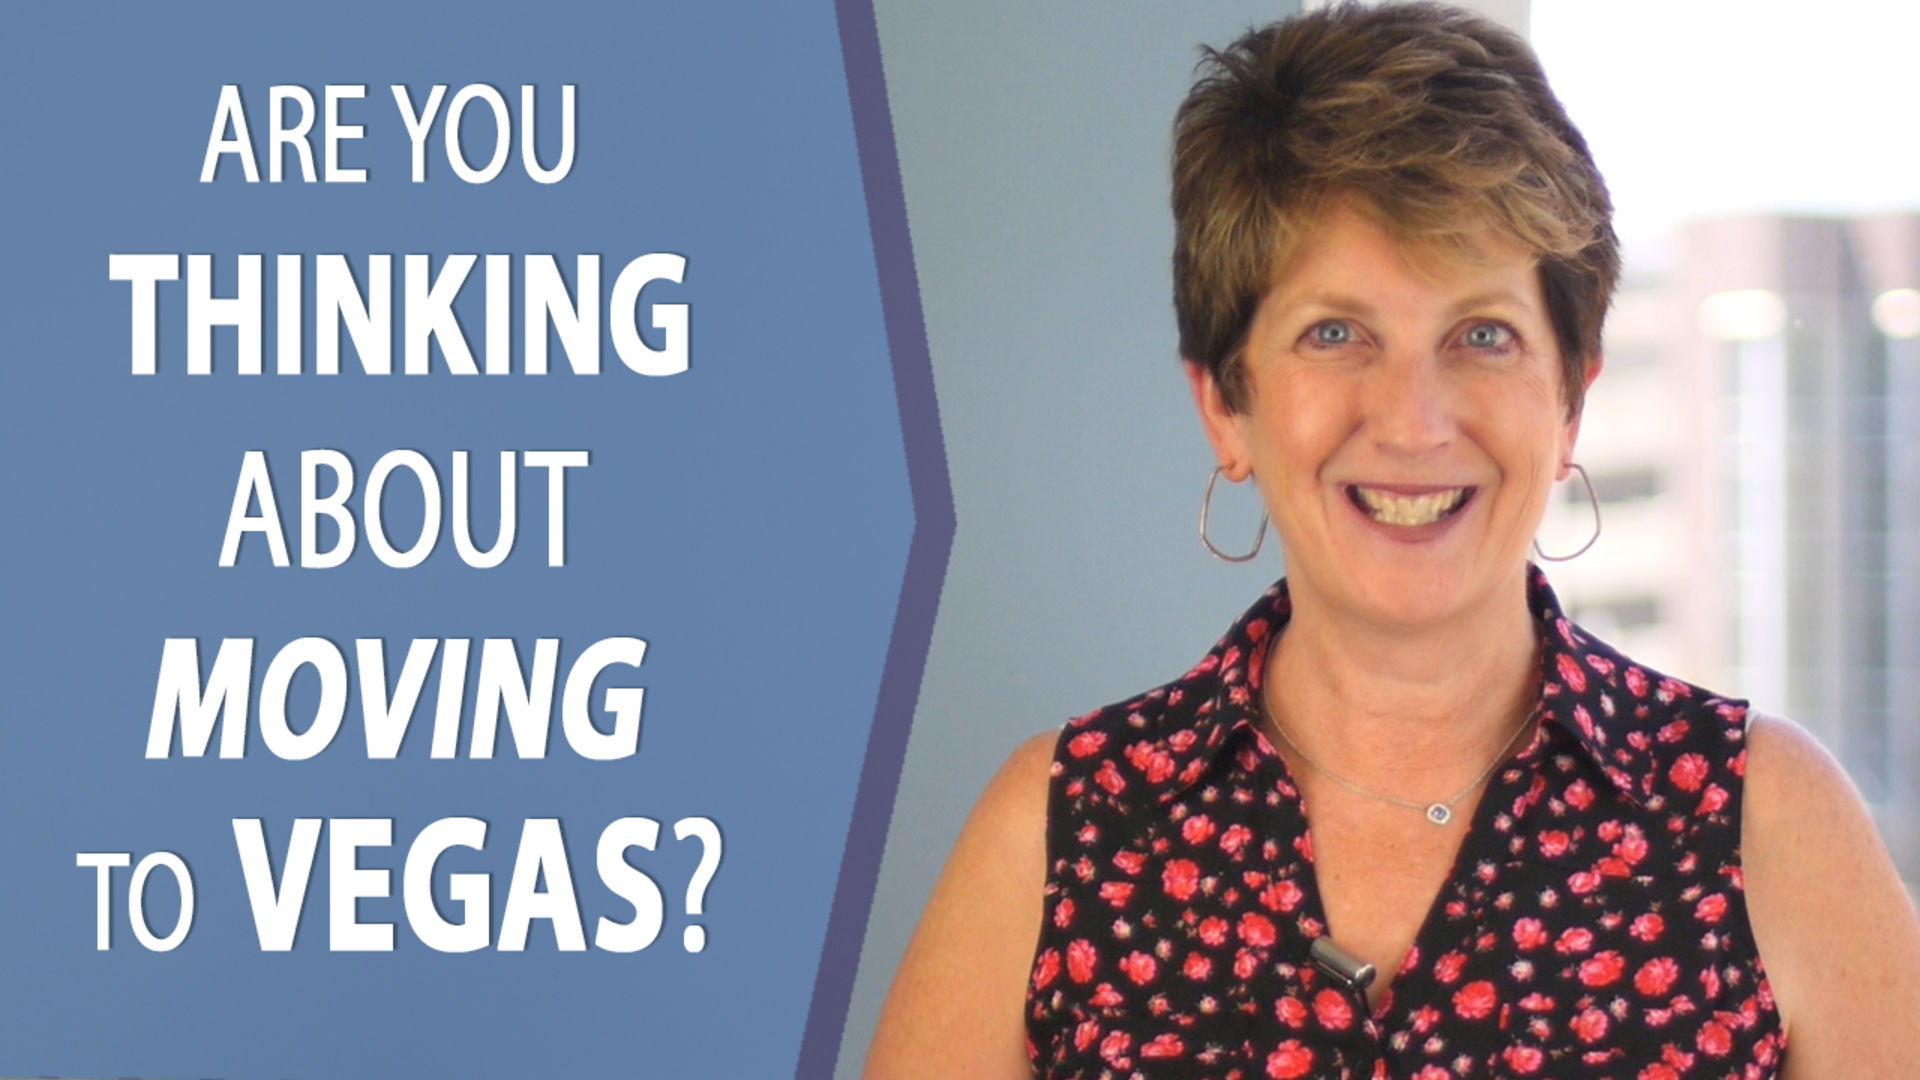 Answering Your Questions About Moving to Vegas